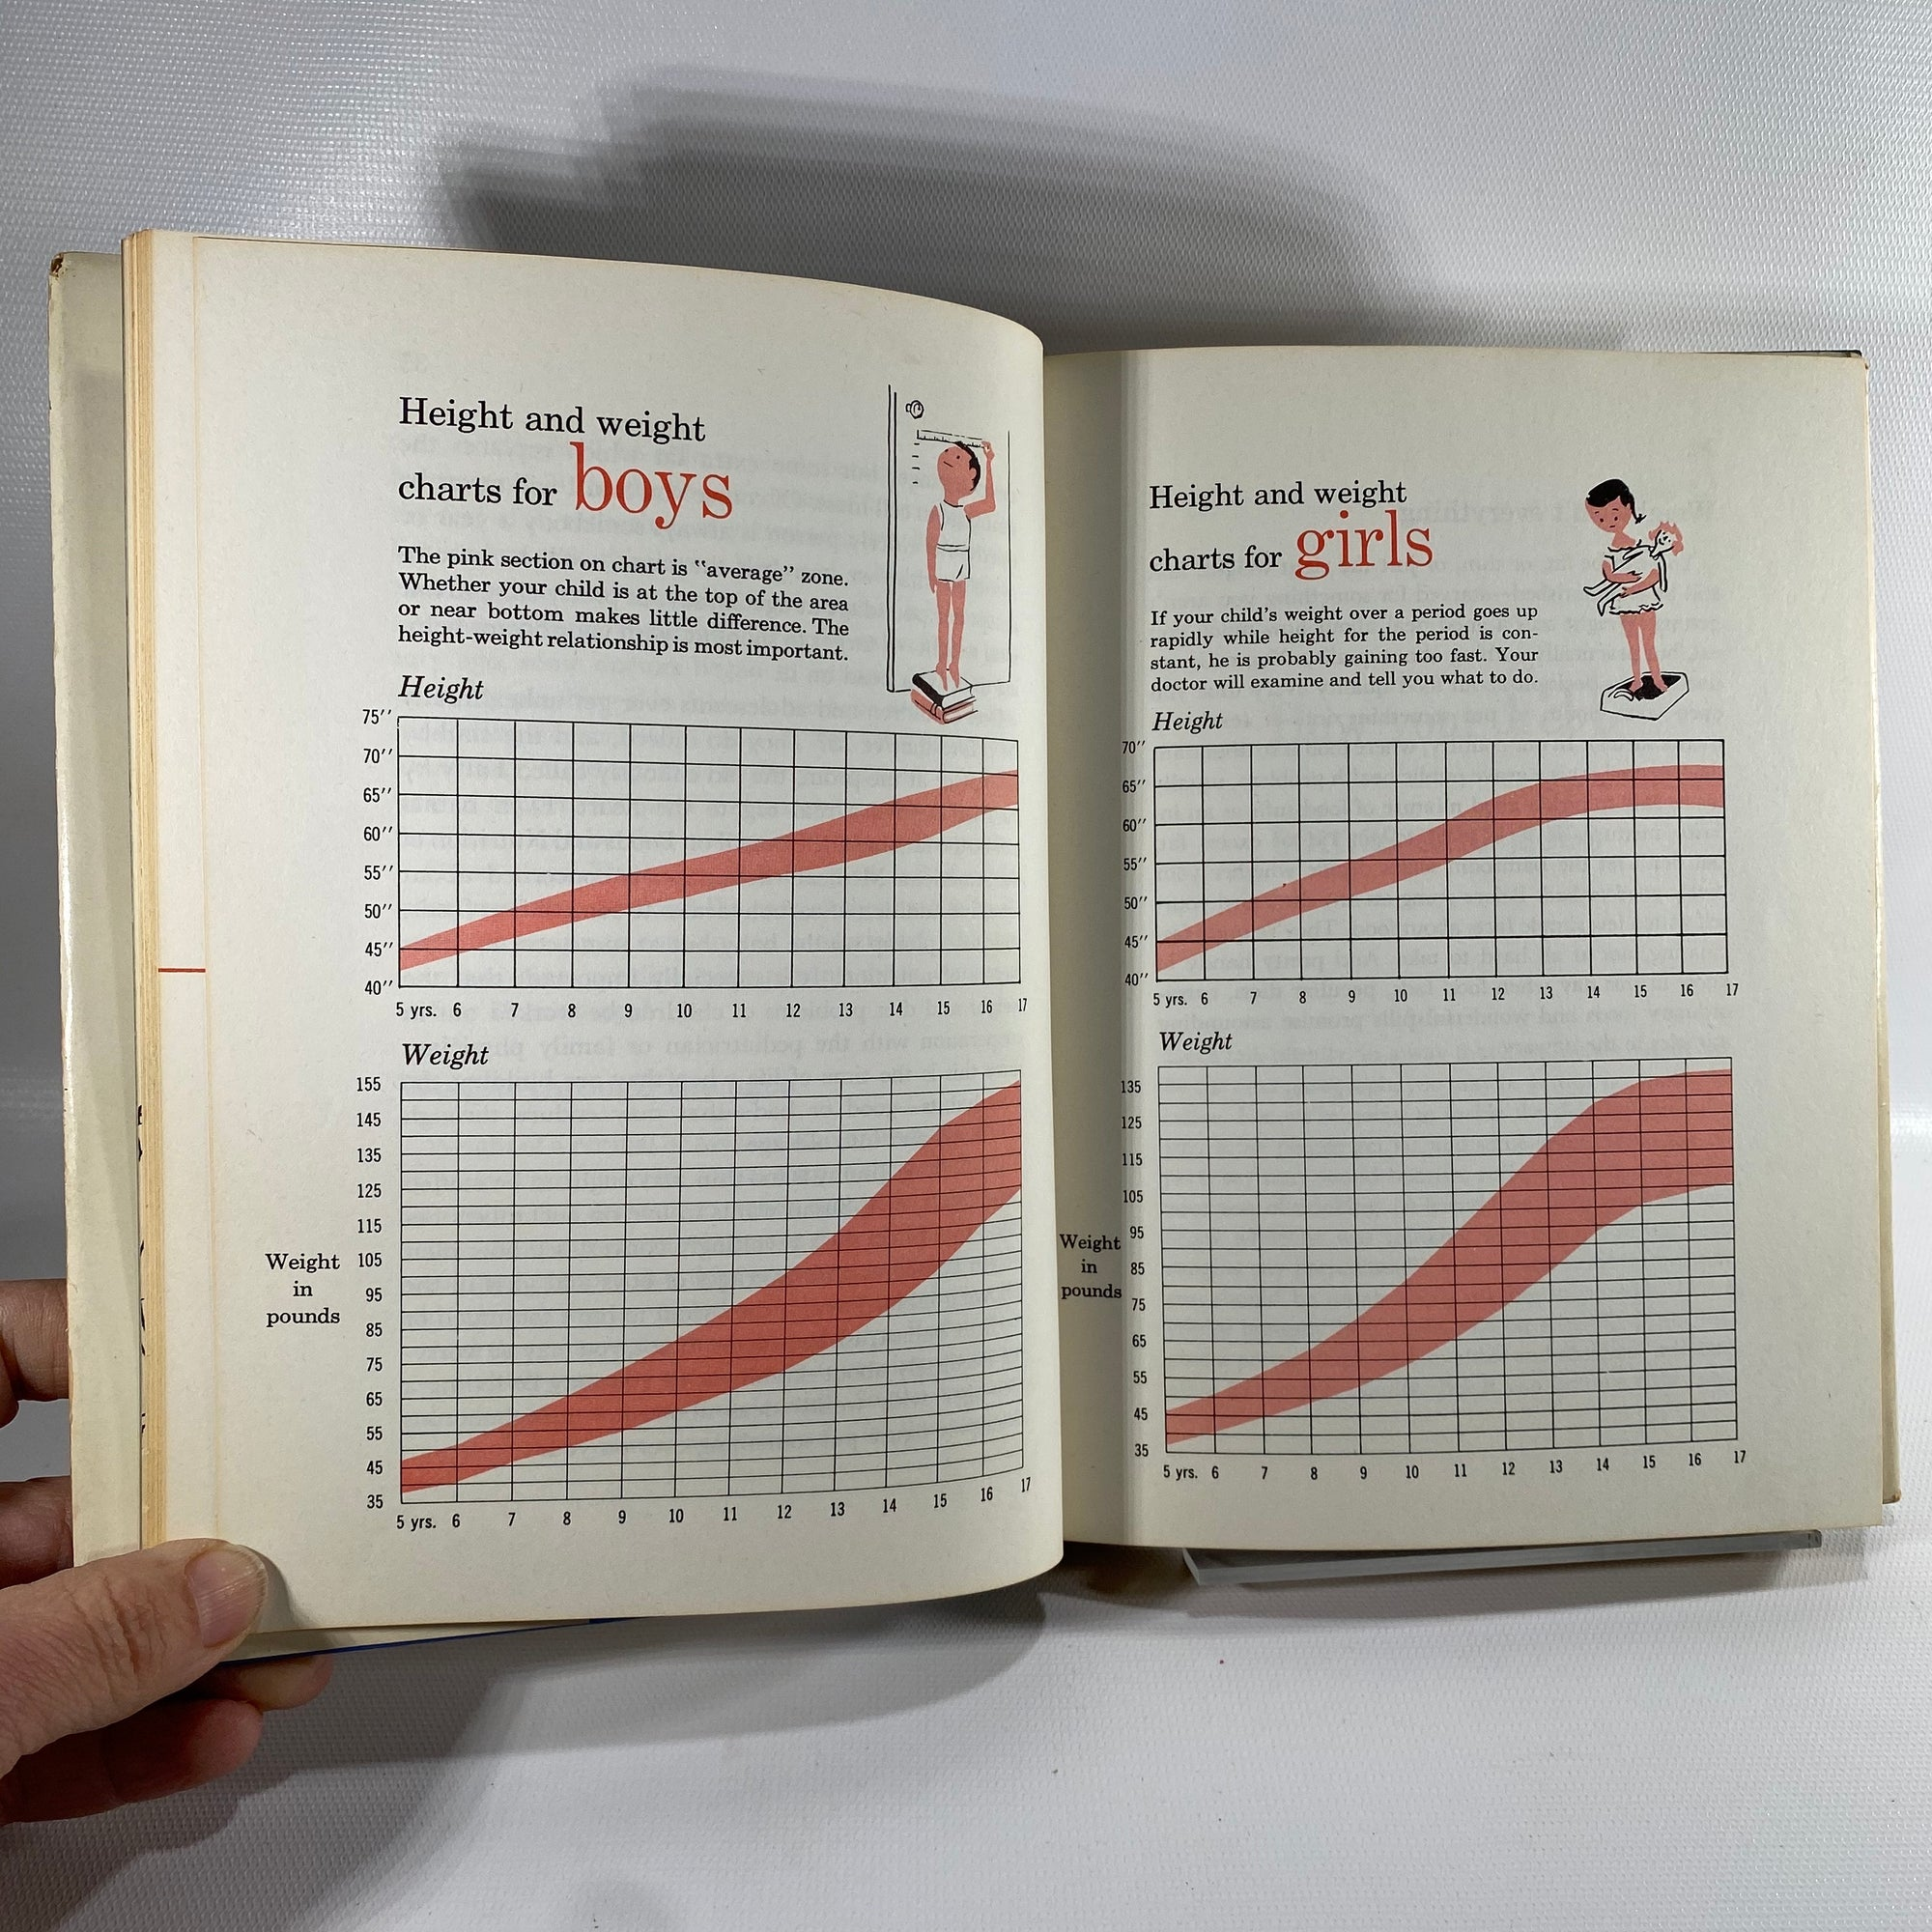 Better Homes and Gardens Diet Book 1955 First Edition